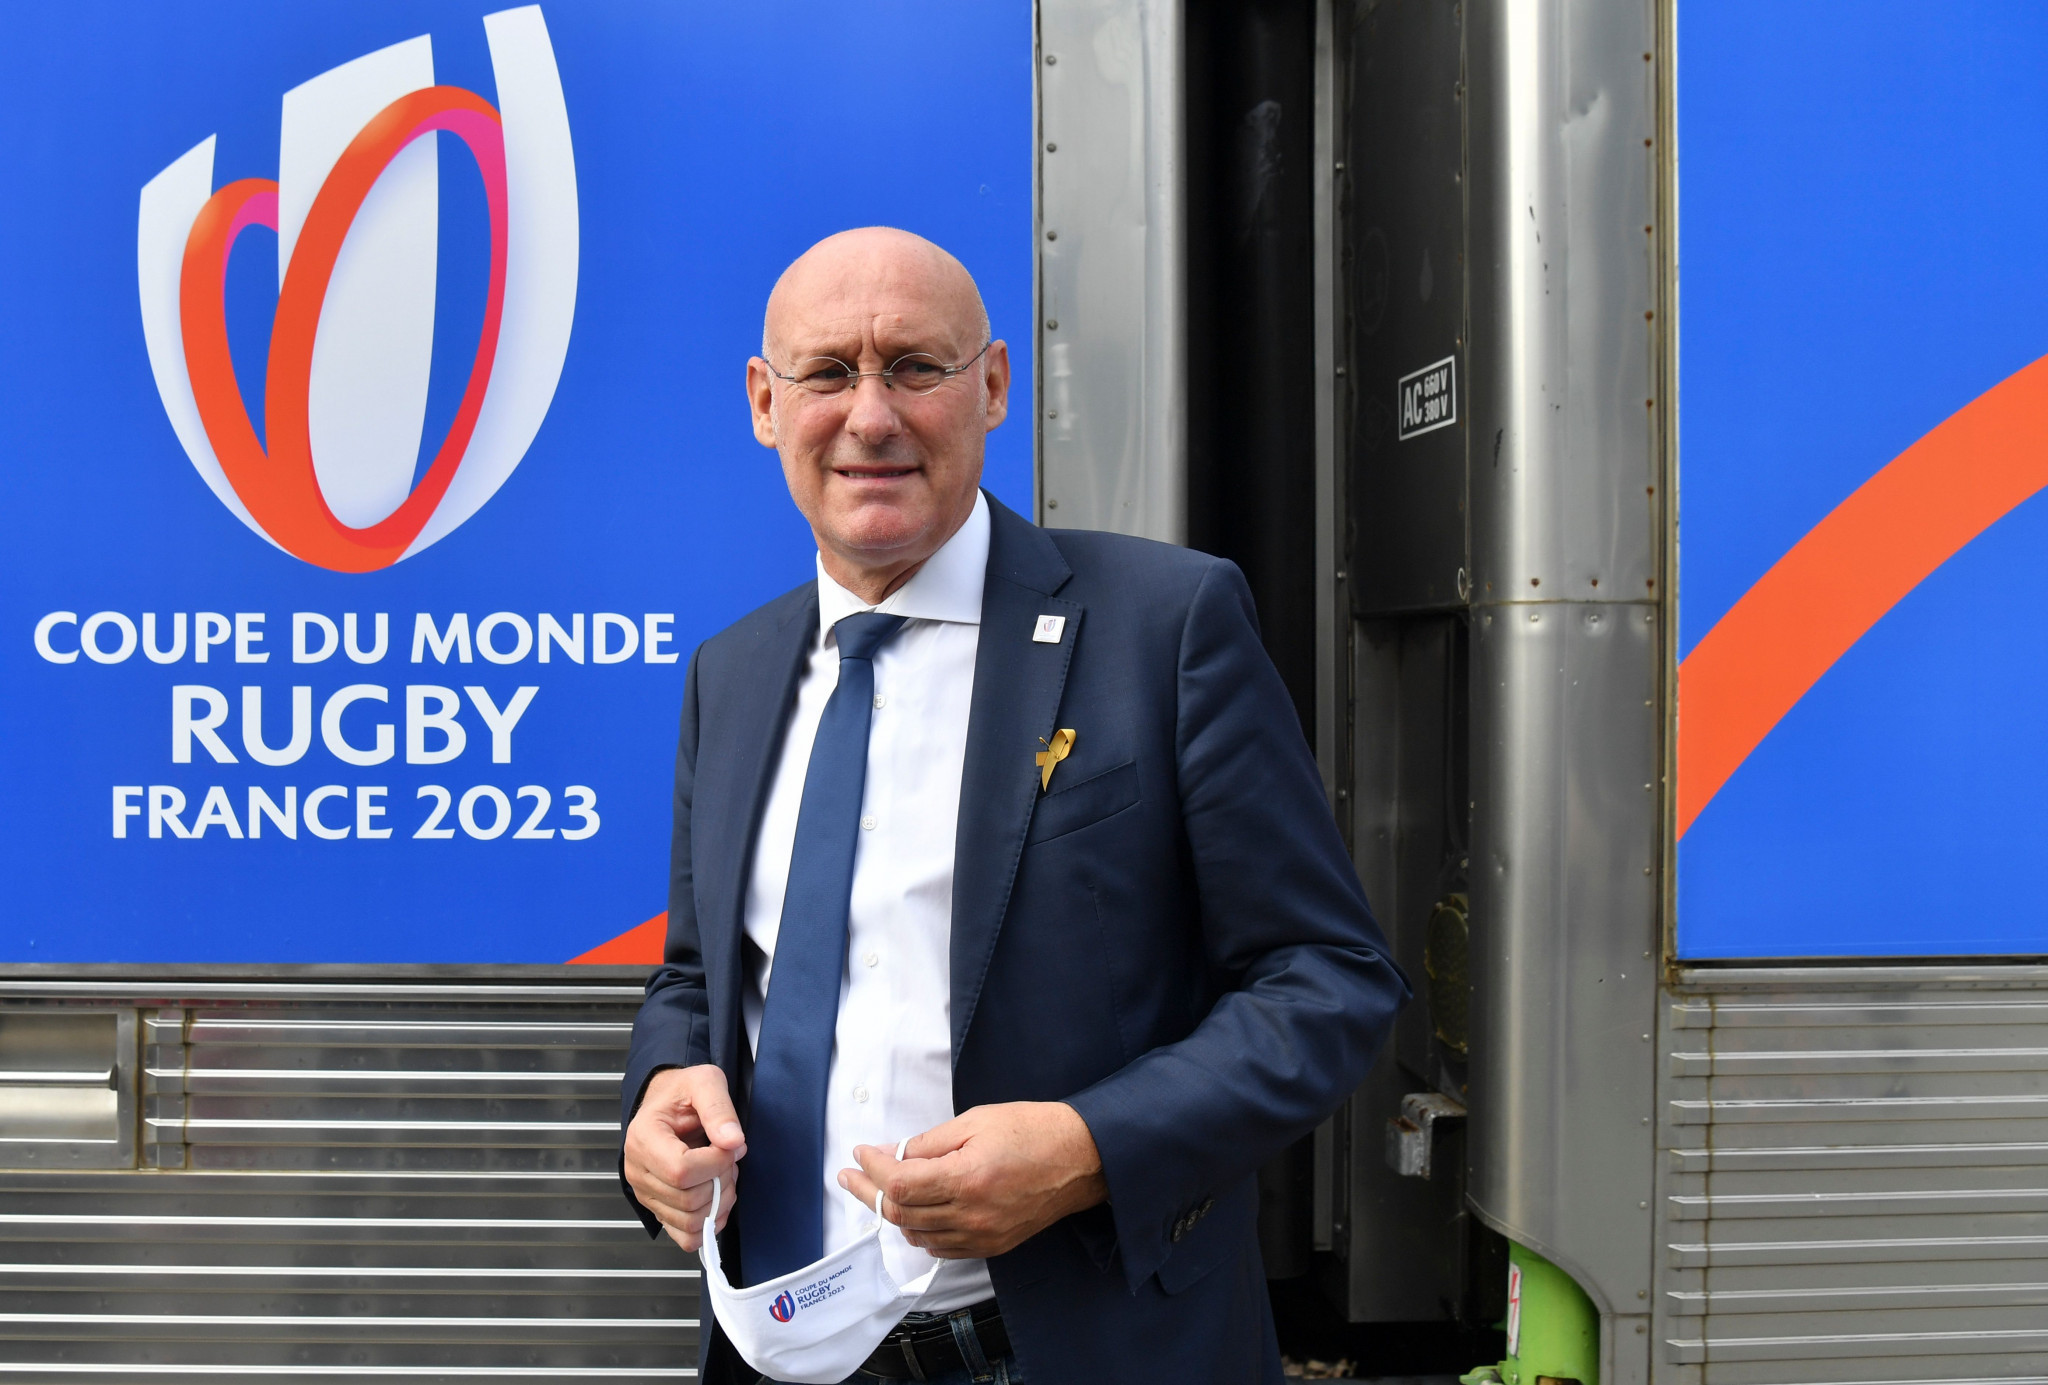 World Rugby vice-chairman Laporte questioned over links to Montpellier owner